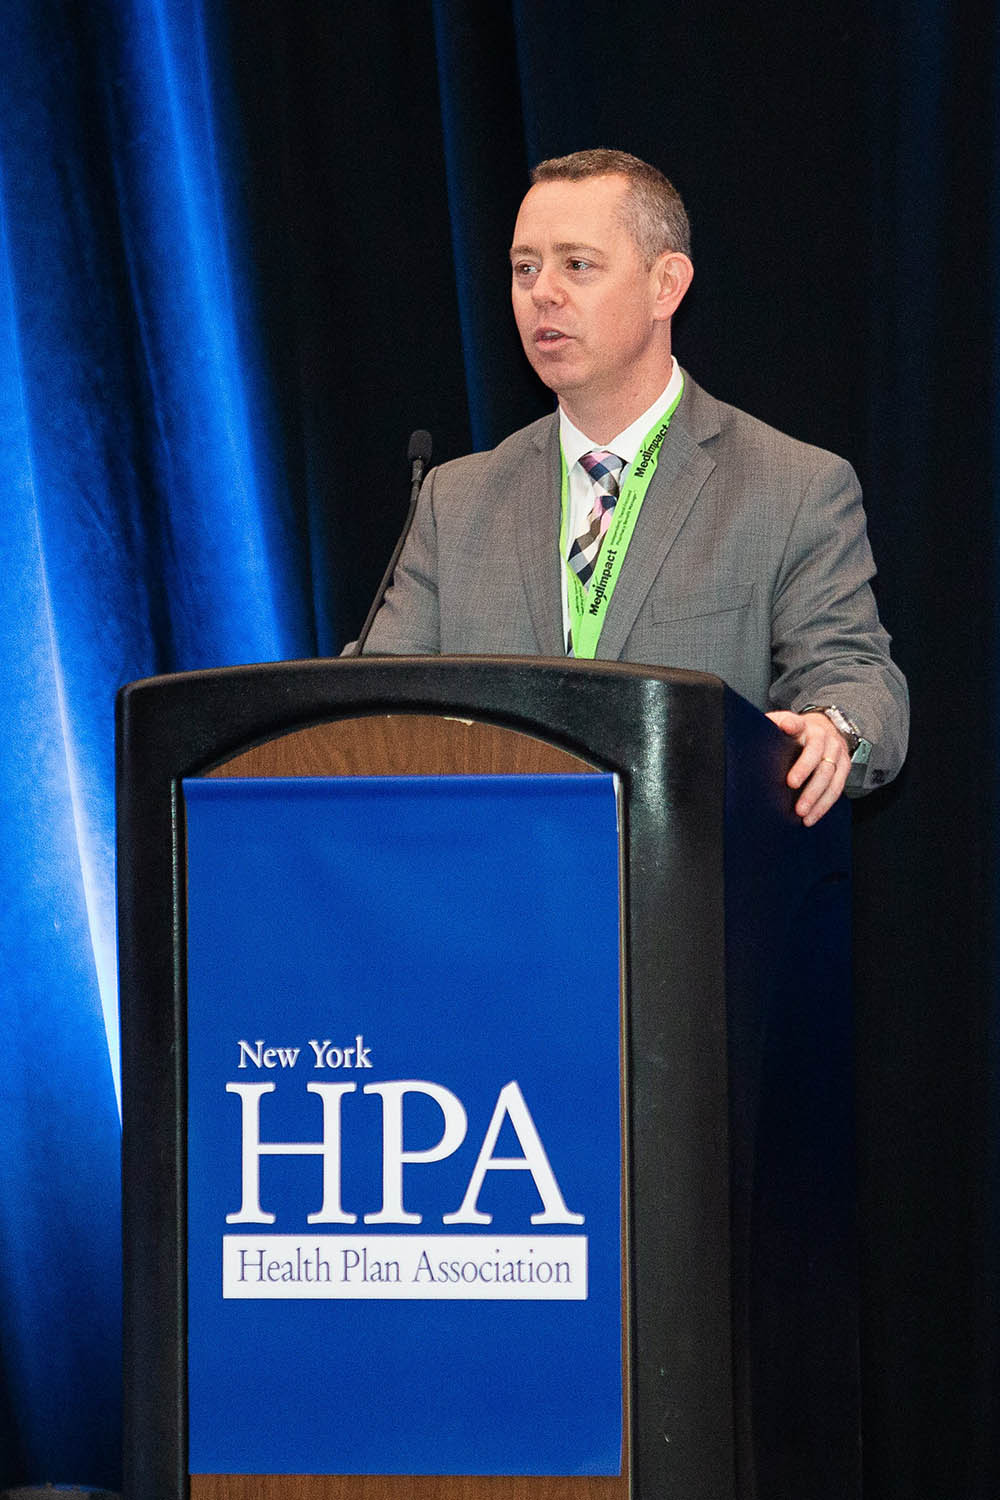 Presenter at 2019 NYHPA Conference